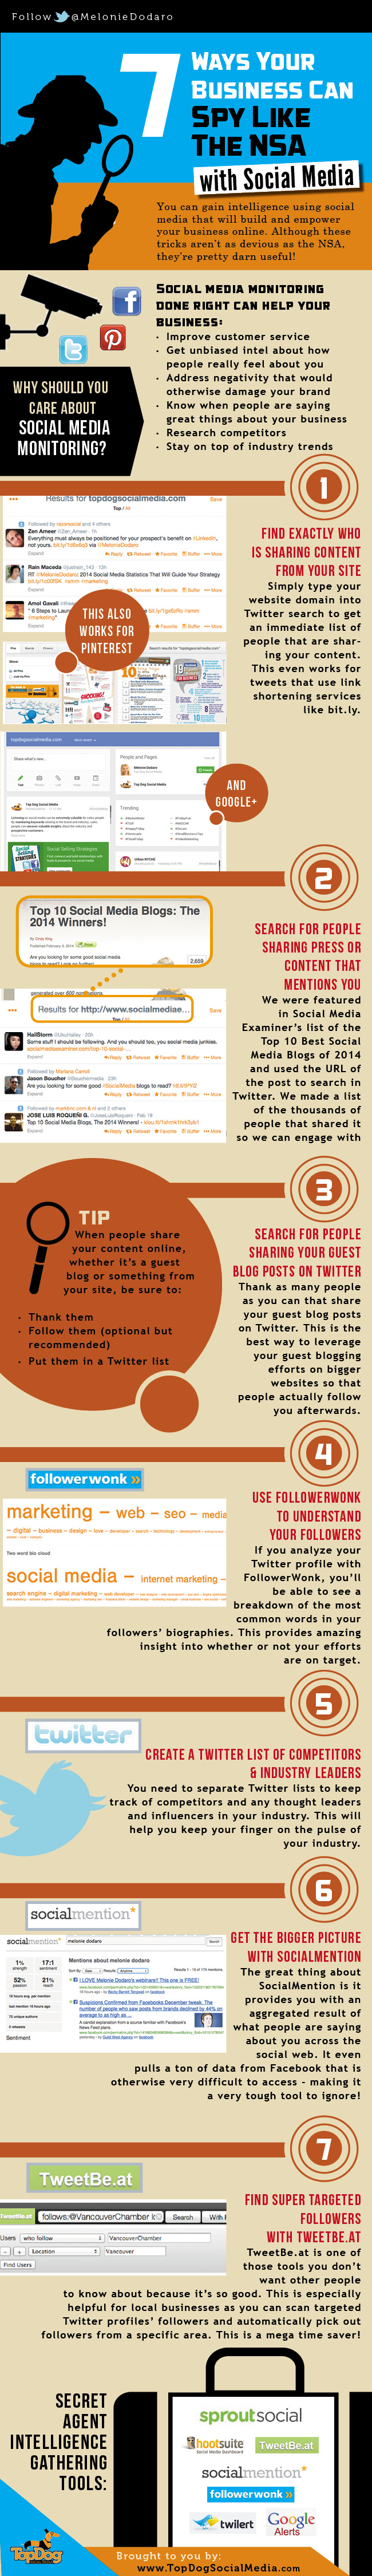 7 Ways To Use Social Media Monitoring Like A Pro.jpg